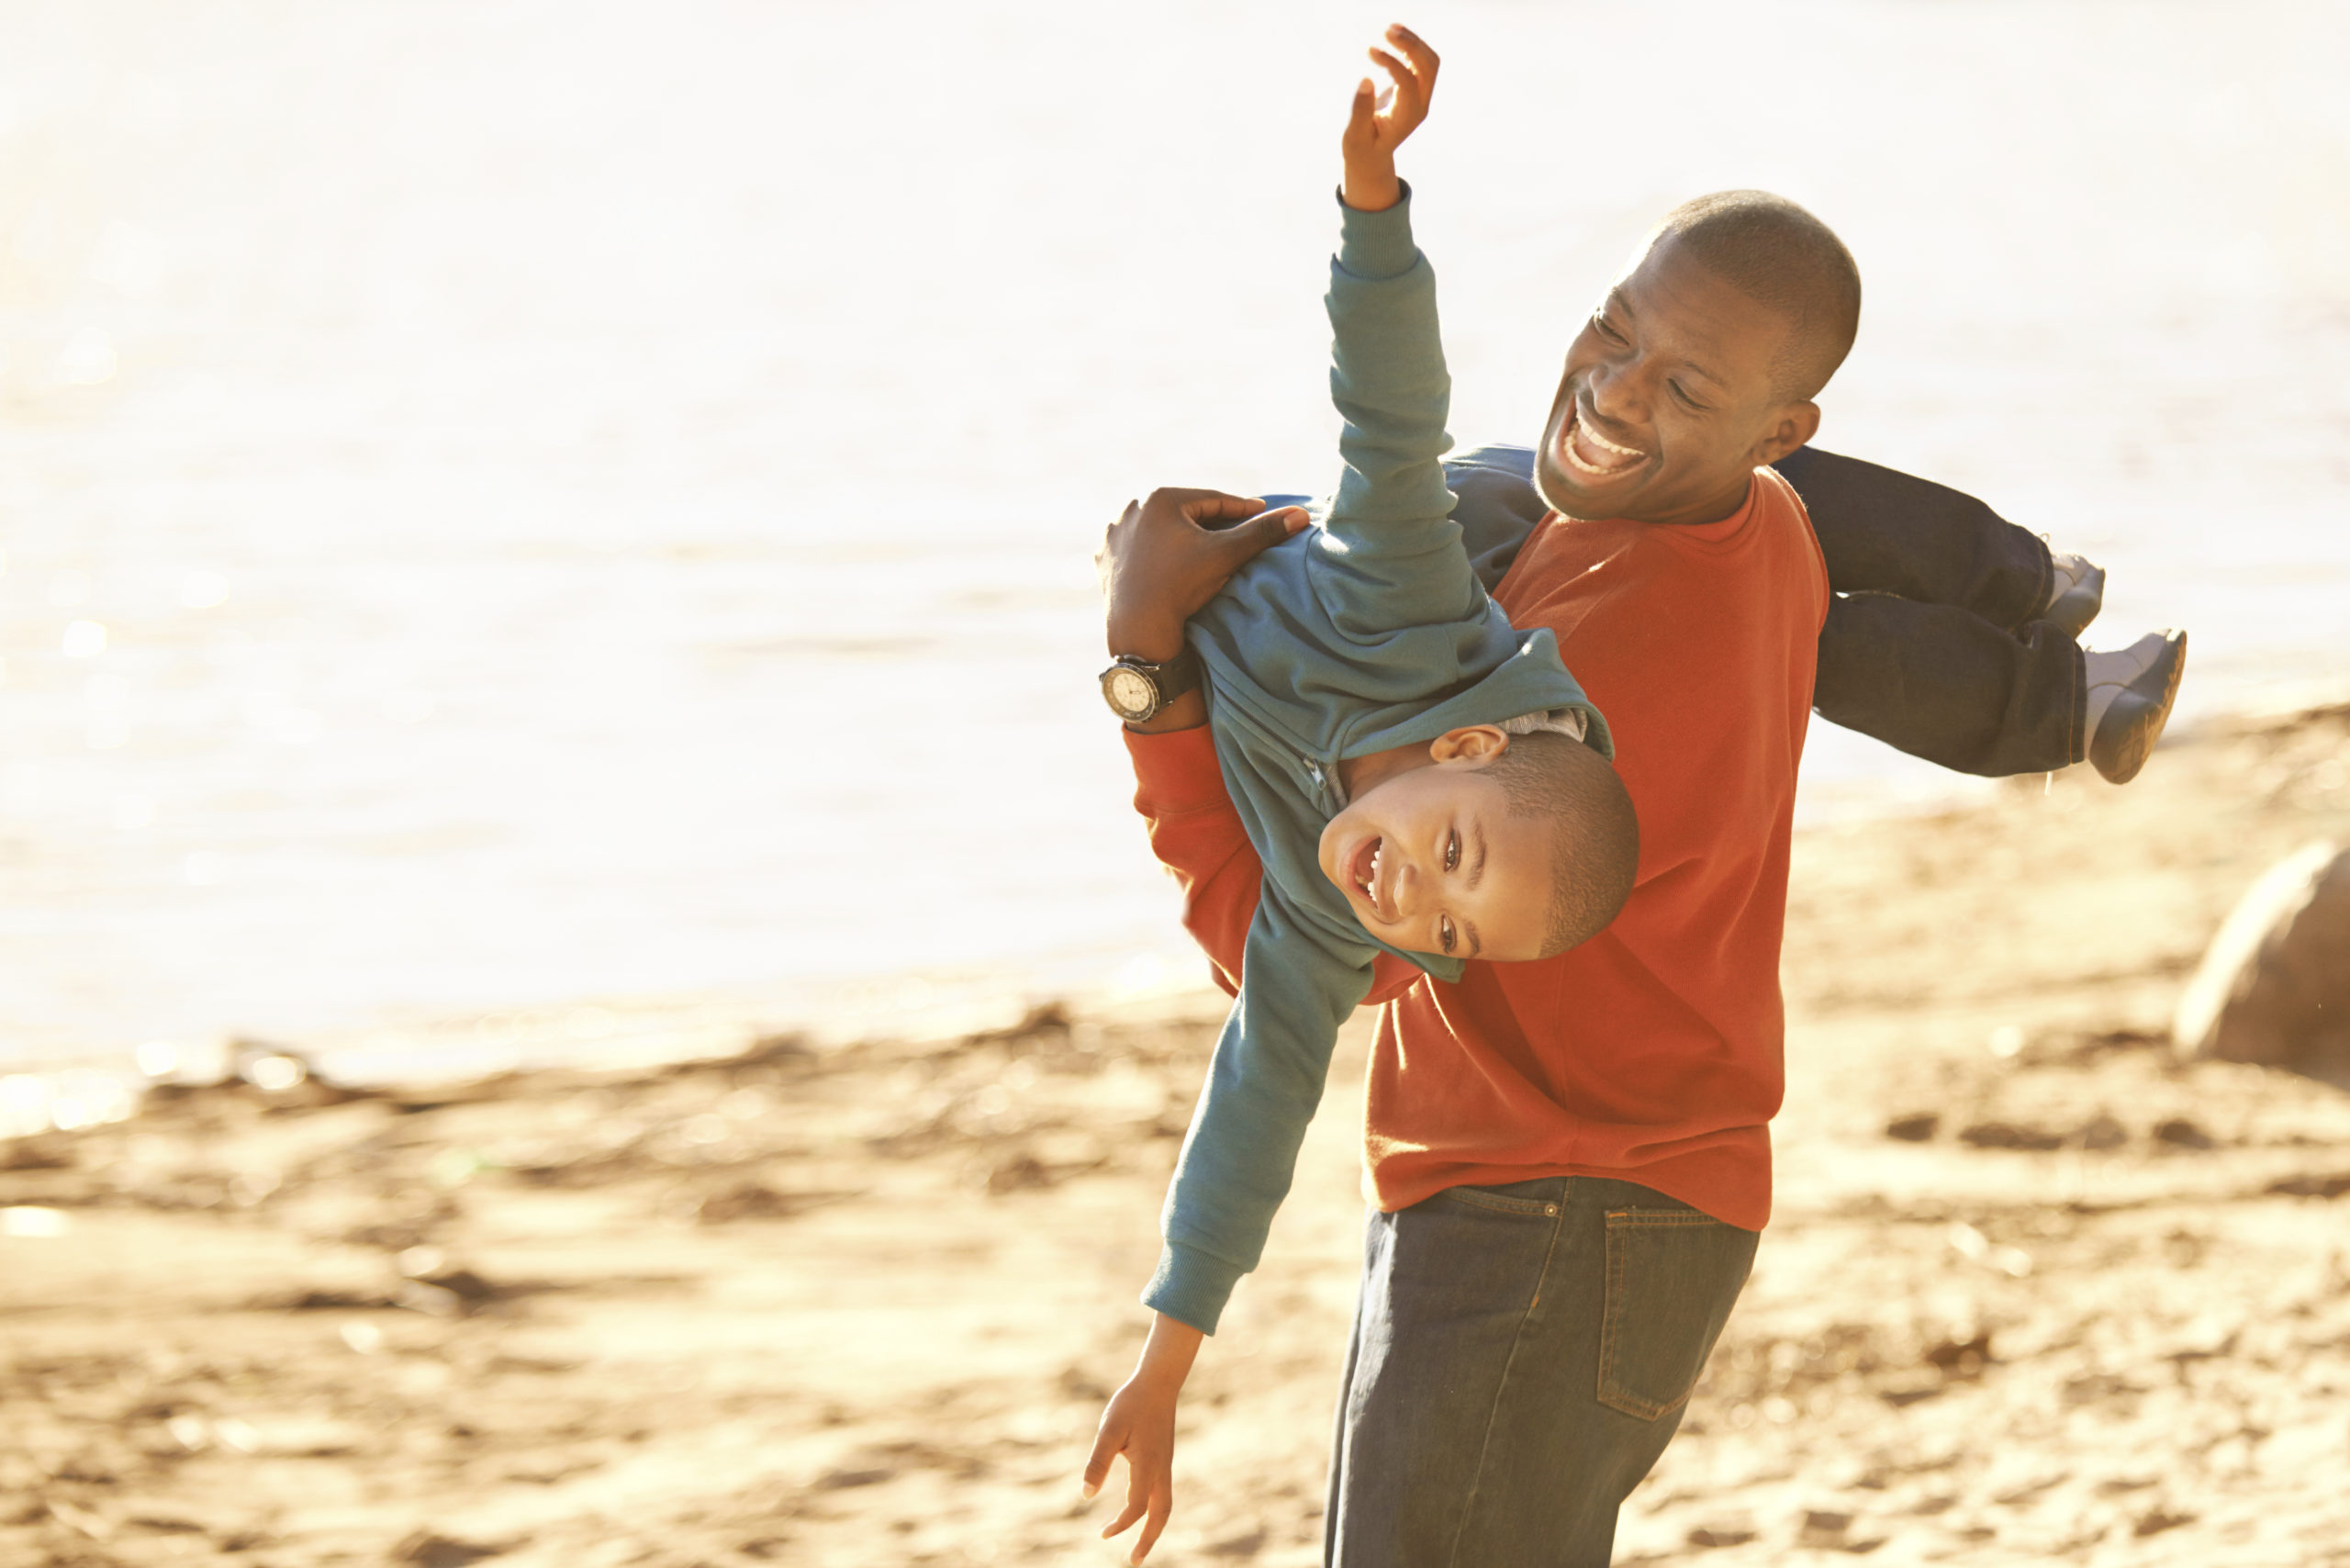 father at the beach with young son, playing airplane